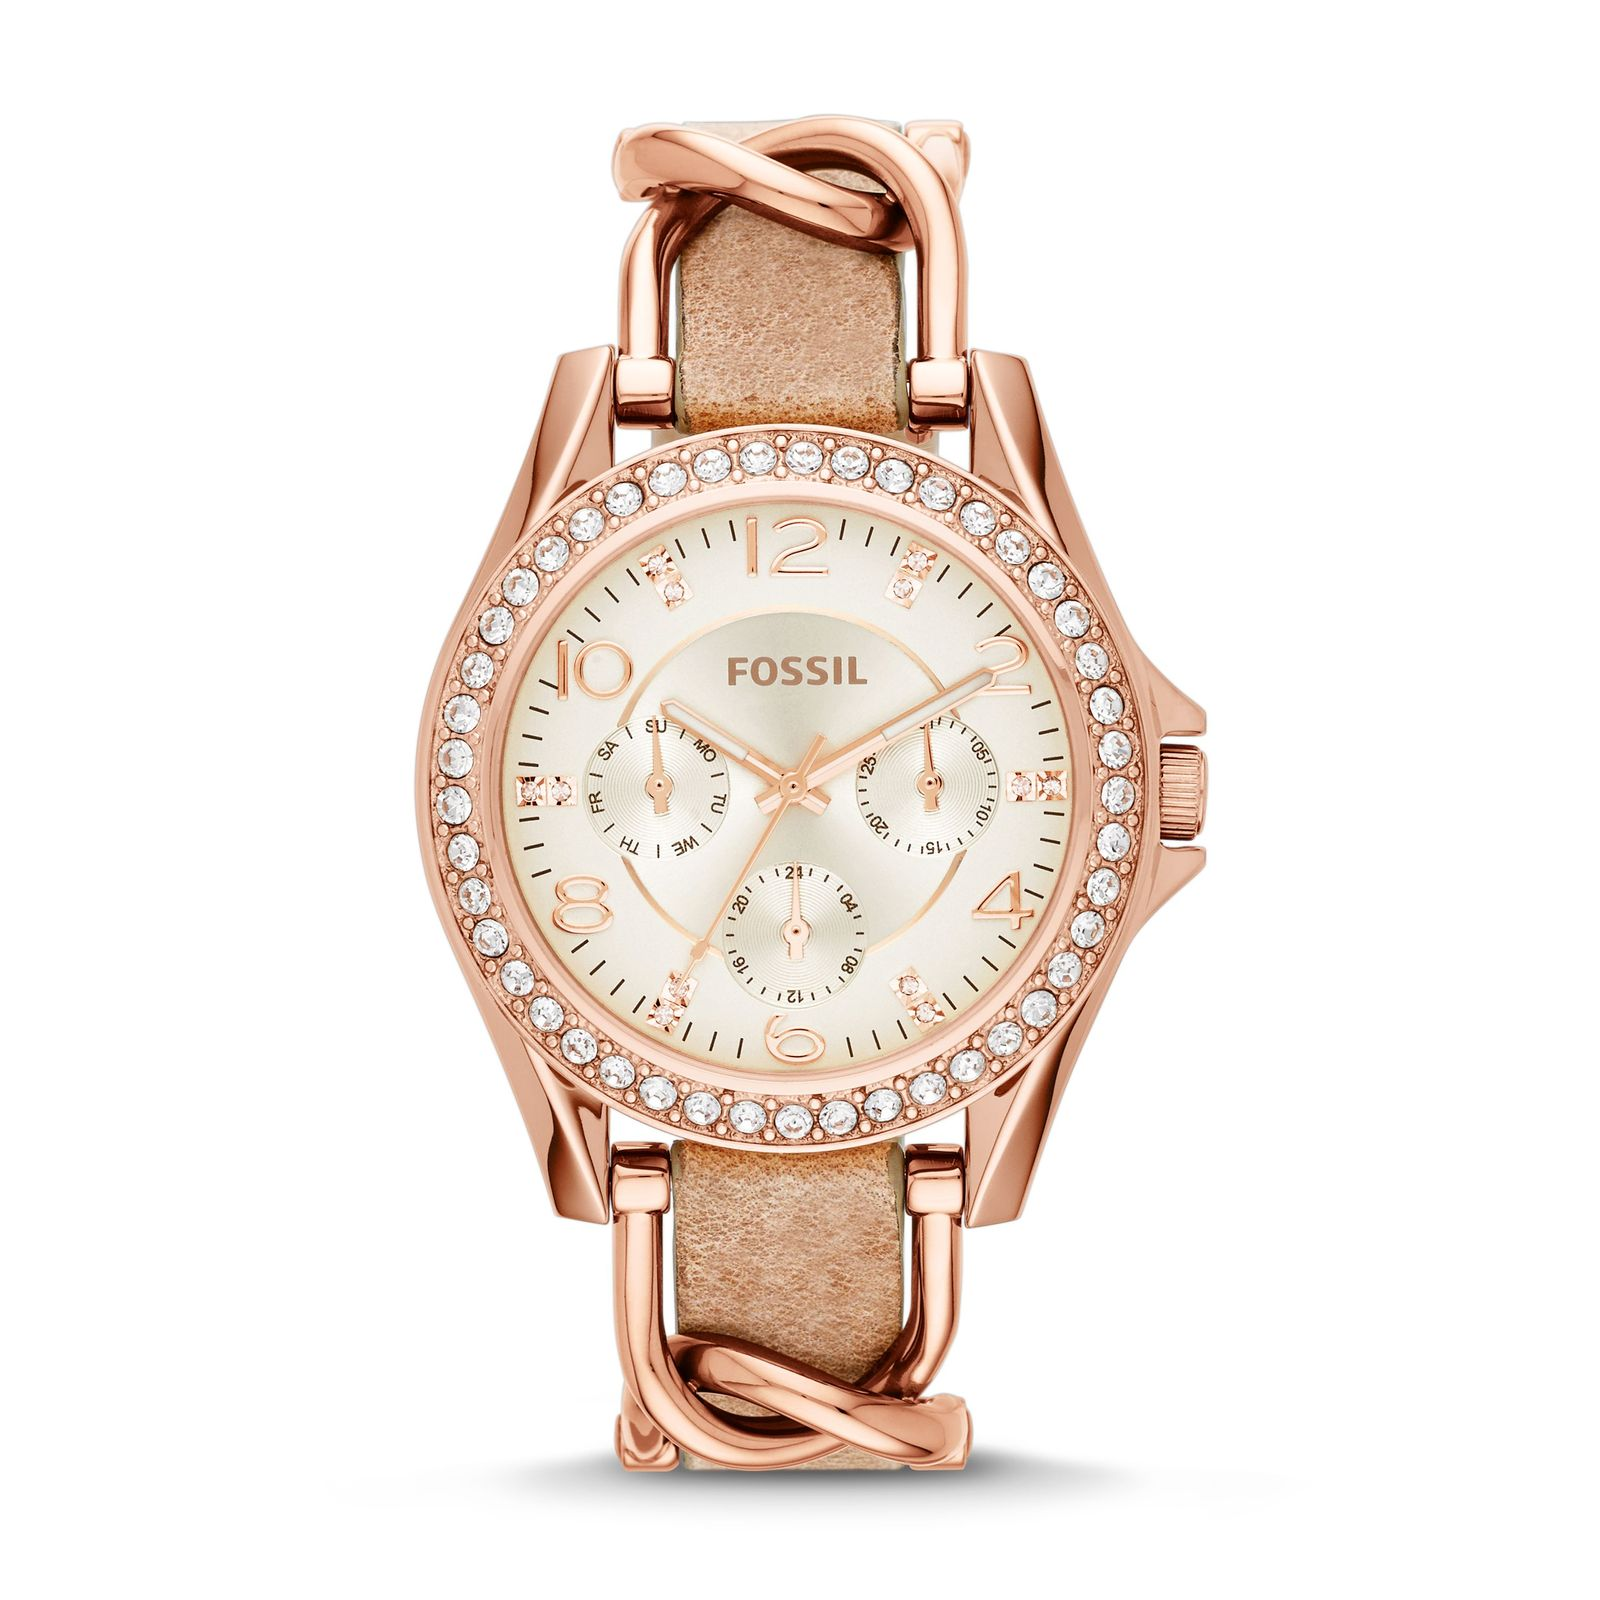 Fossil Women's Riley Leather Watch (Style: ES3466) image 1